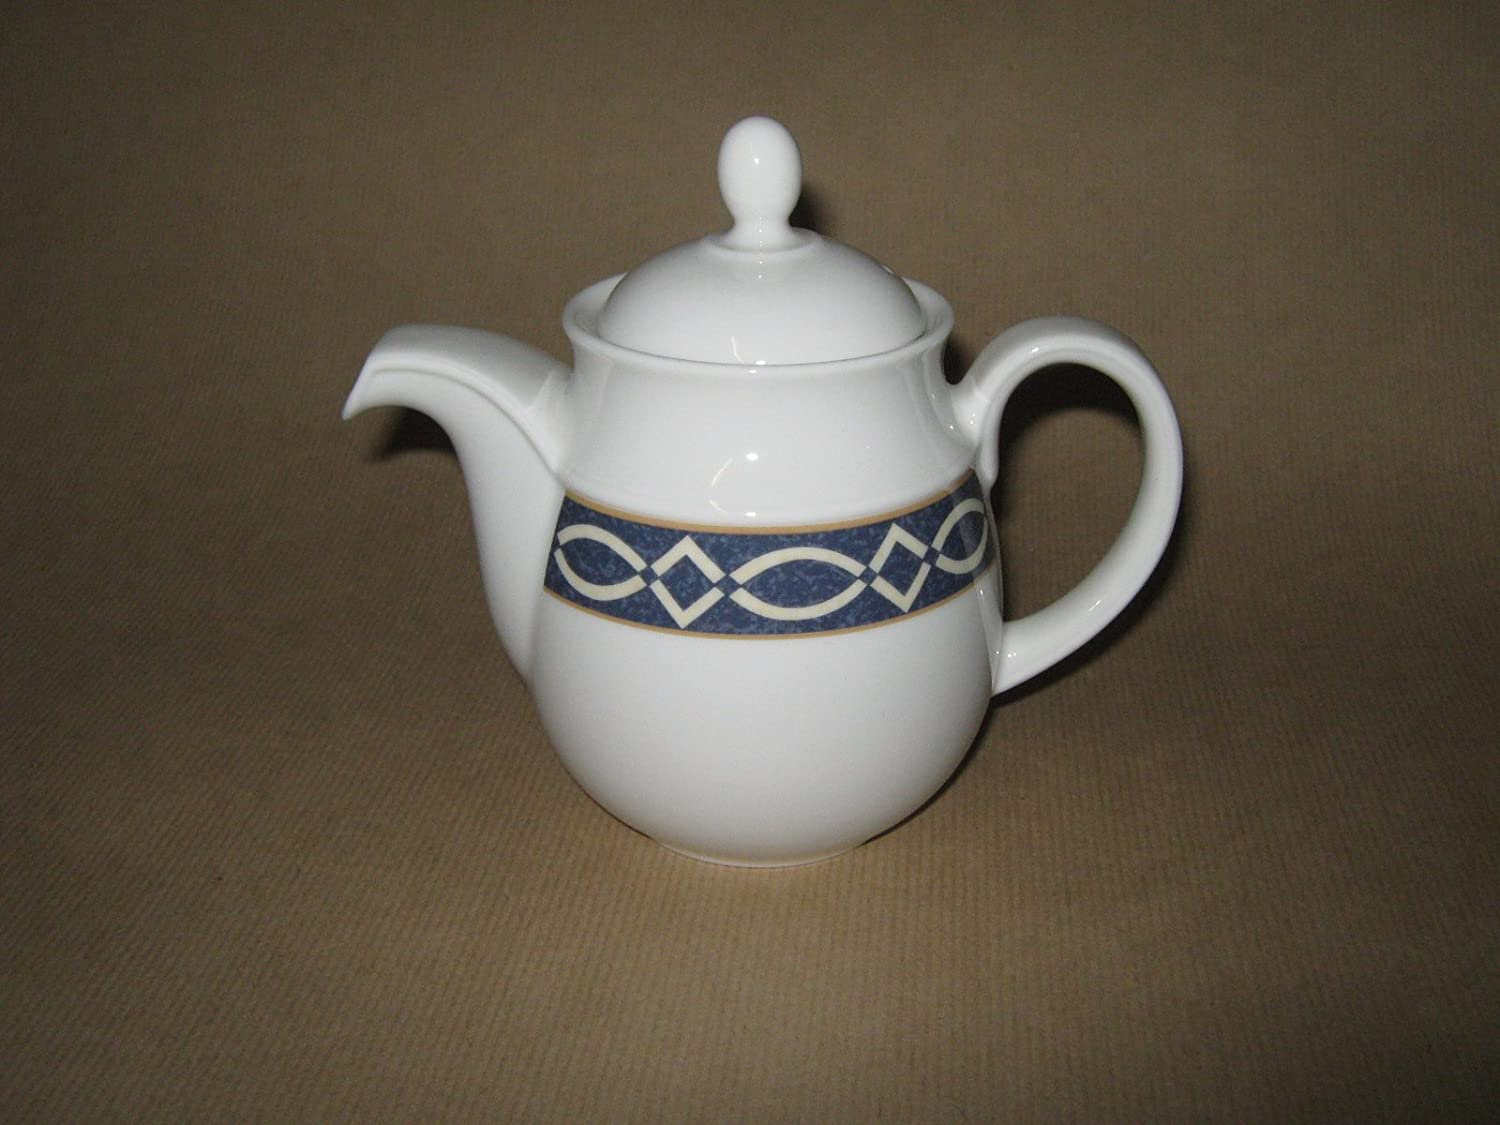 2-piece set of 28Cl sugar bowl and 23cl milk jug Palazzo with decorative circles in grey and dark red